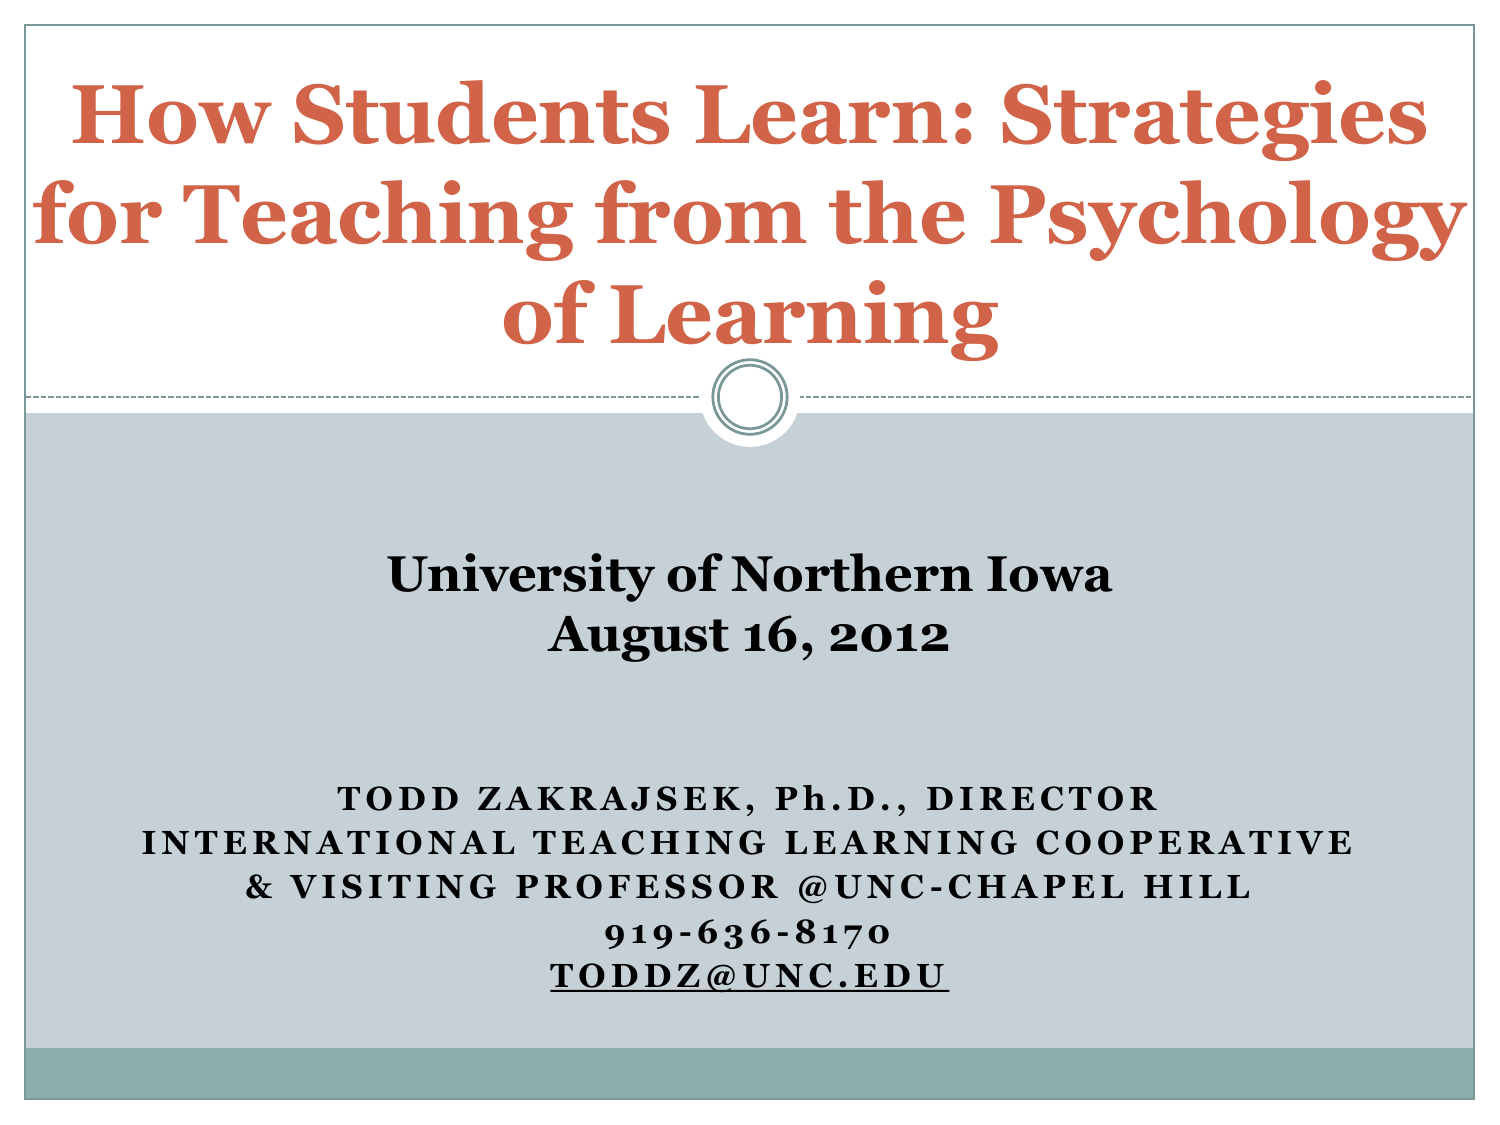 How Students Learn: Strategies for Teaching from the